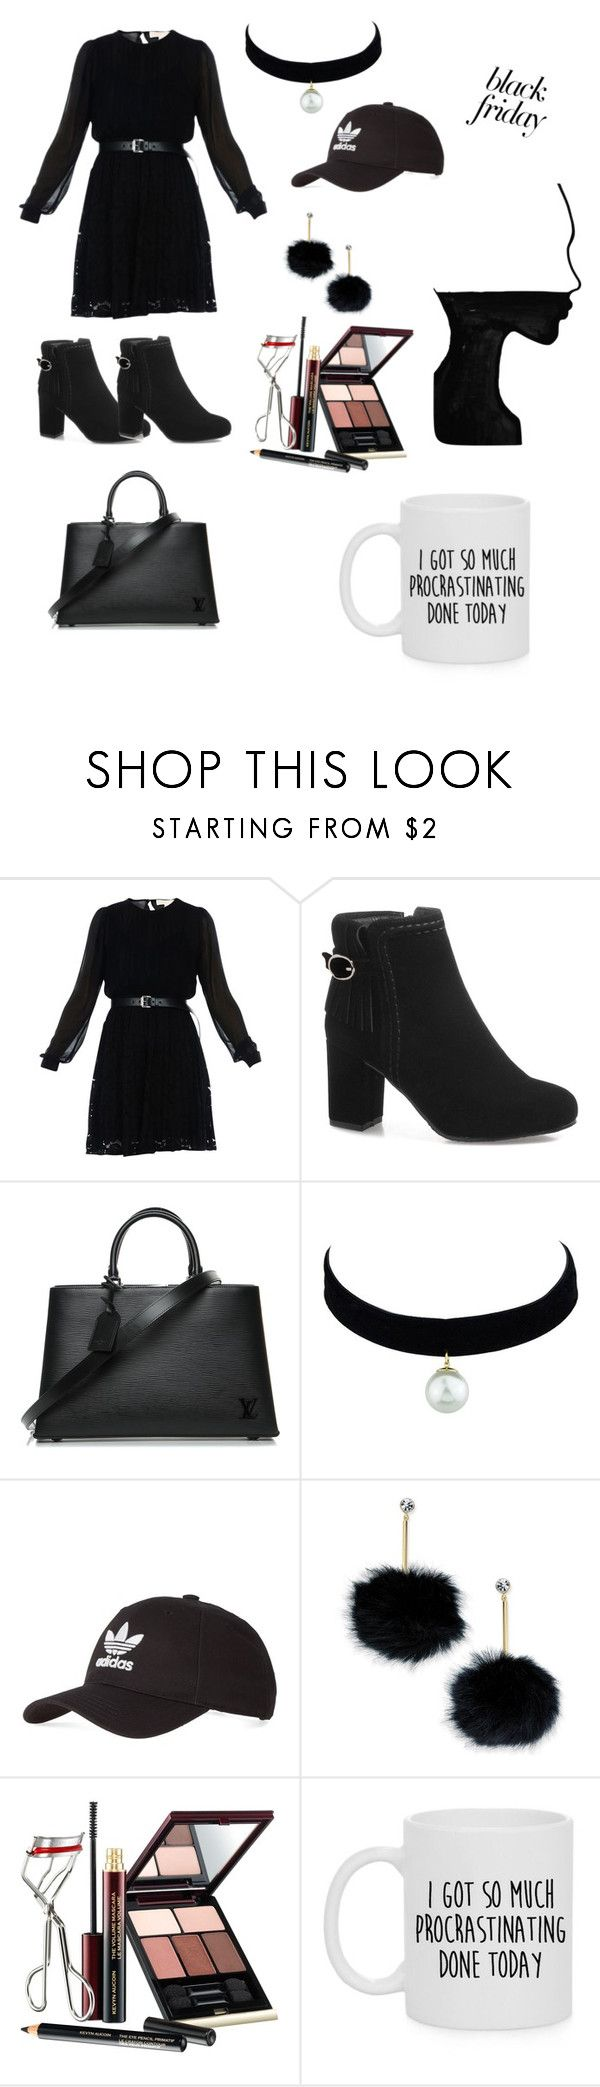 """""""Let's go shopping!  Beacuse it's black friday! !!"""" by hannaisthebest ❤ liked on Polyvore featuring MICHAEL Michael Kors, Louis Vuitton, adidas, Kate Spade and Kevyn Aucoin"""